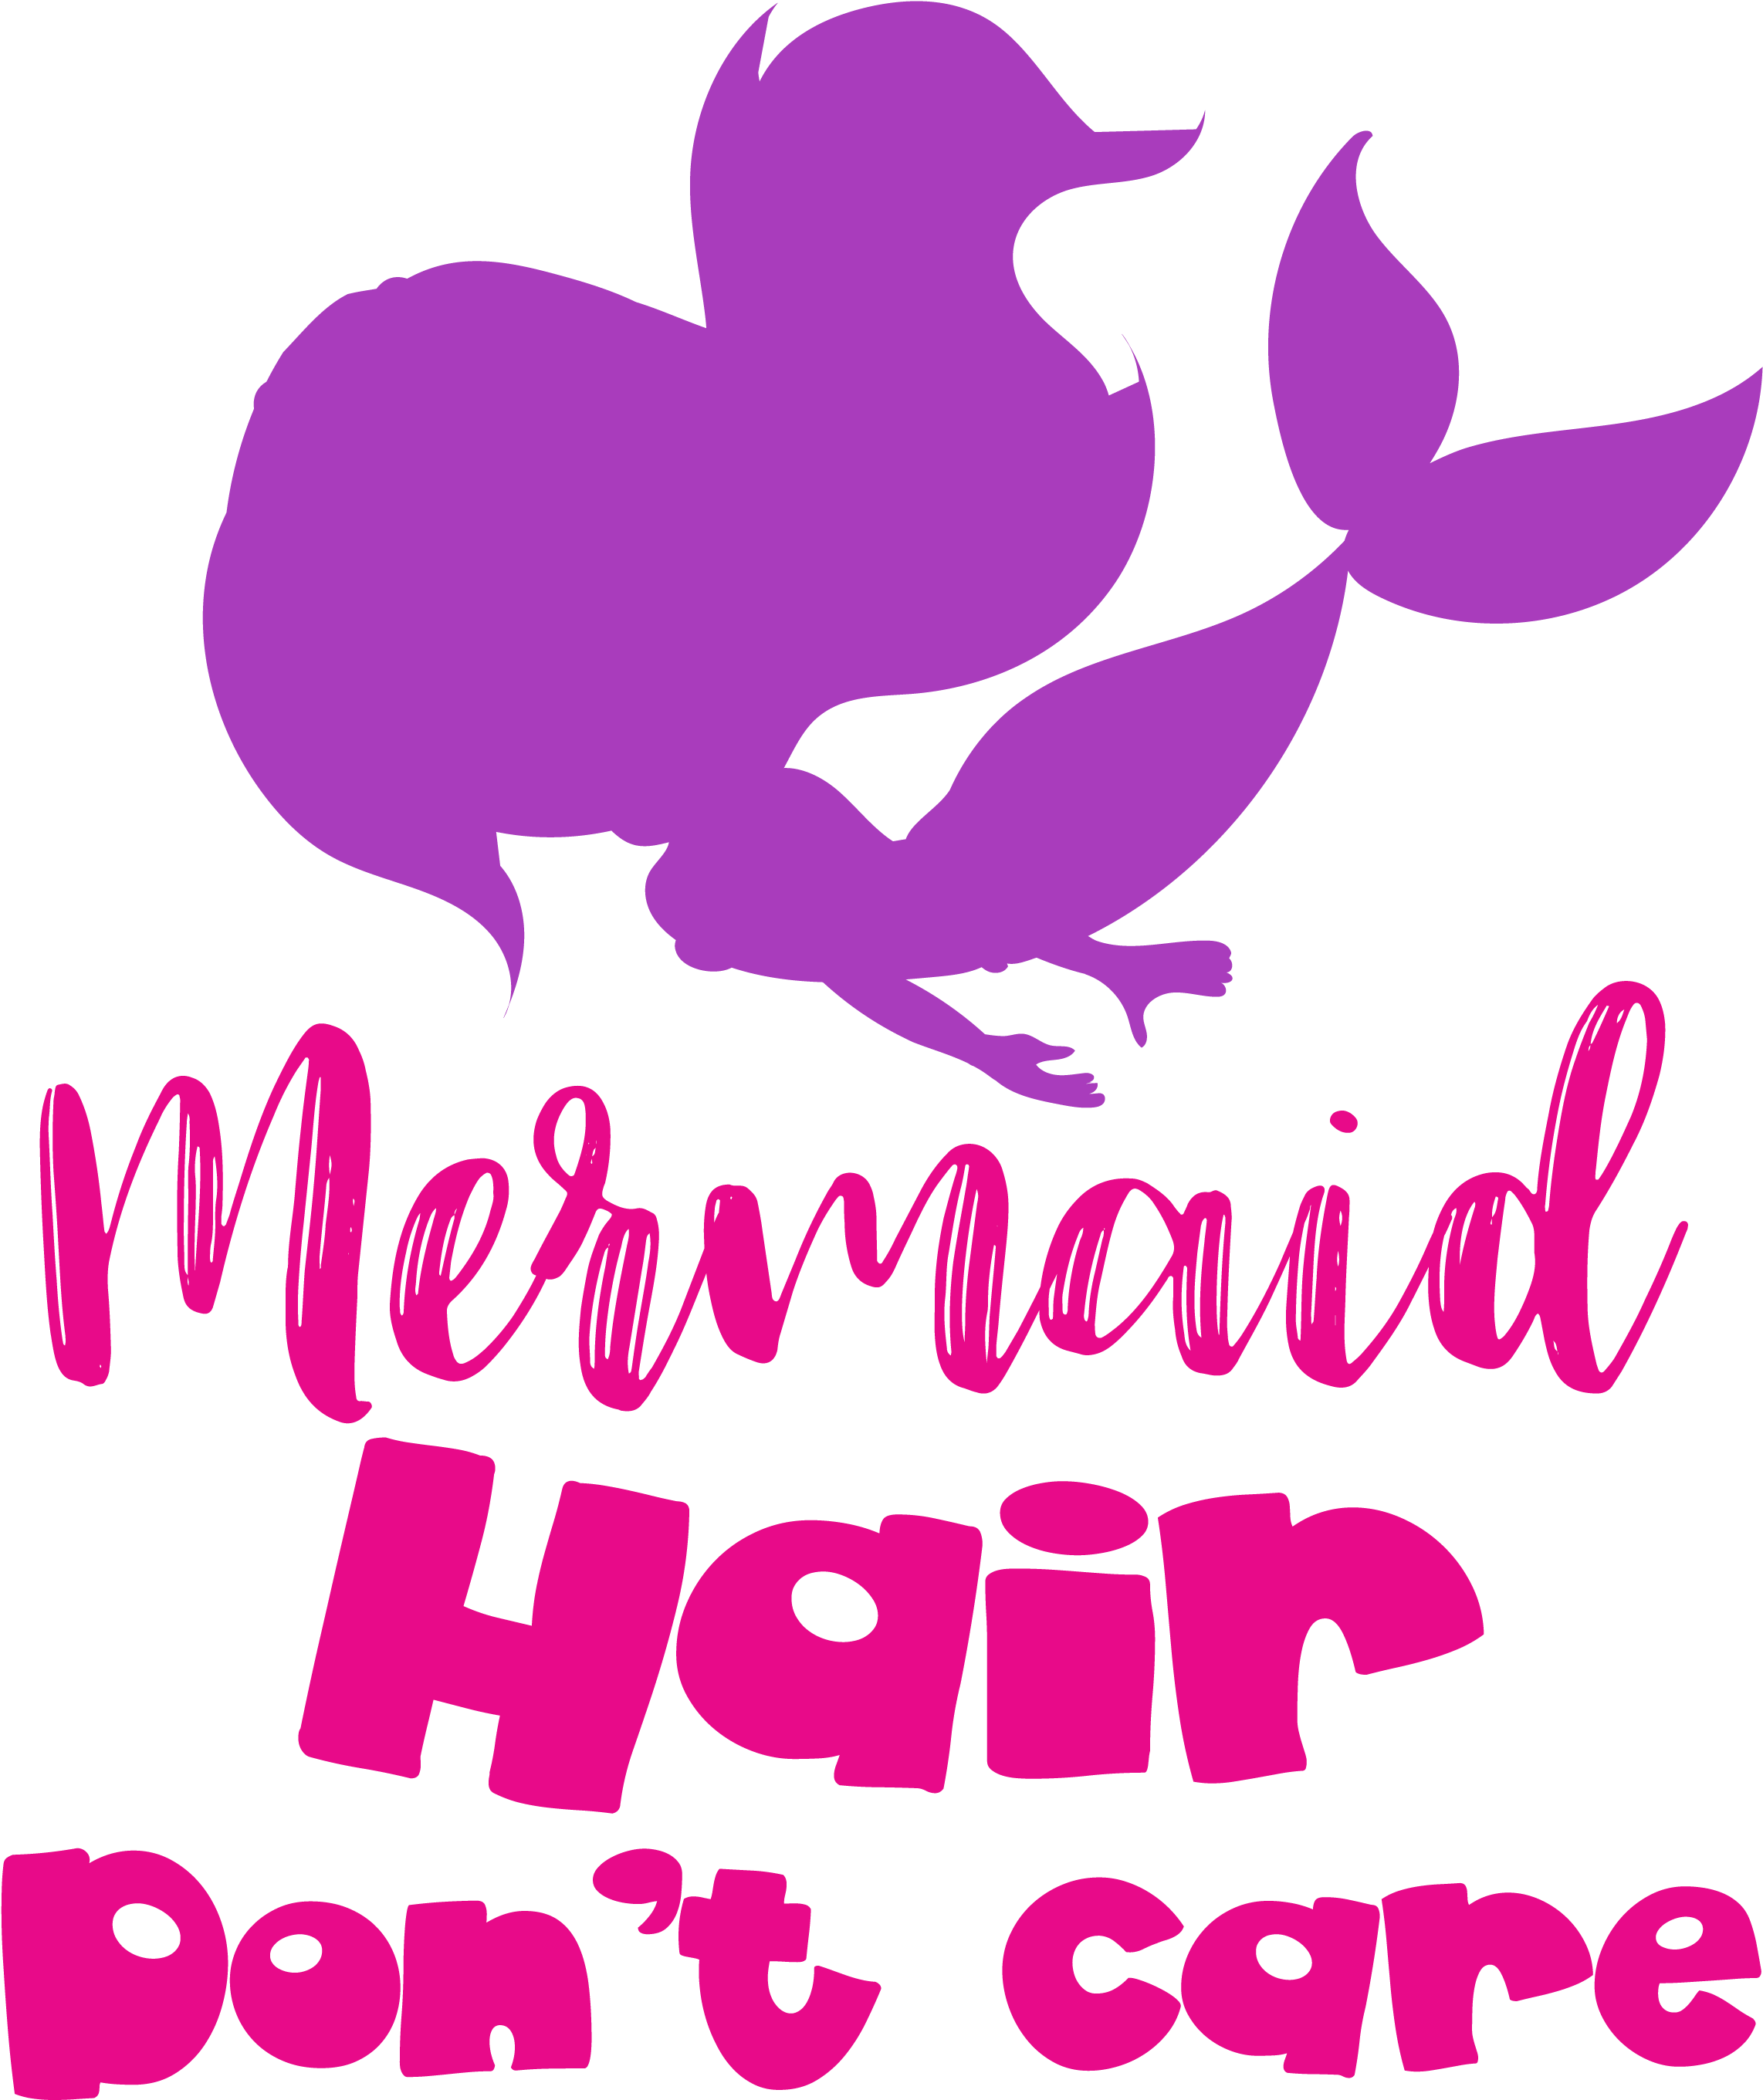 Mermaid Silhouette Png Merma Hair Don T Care Cutting Files Svg Dxf Pdf Digitale Seiten 1267568 Vippng